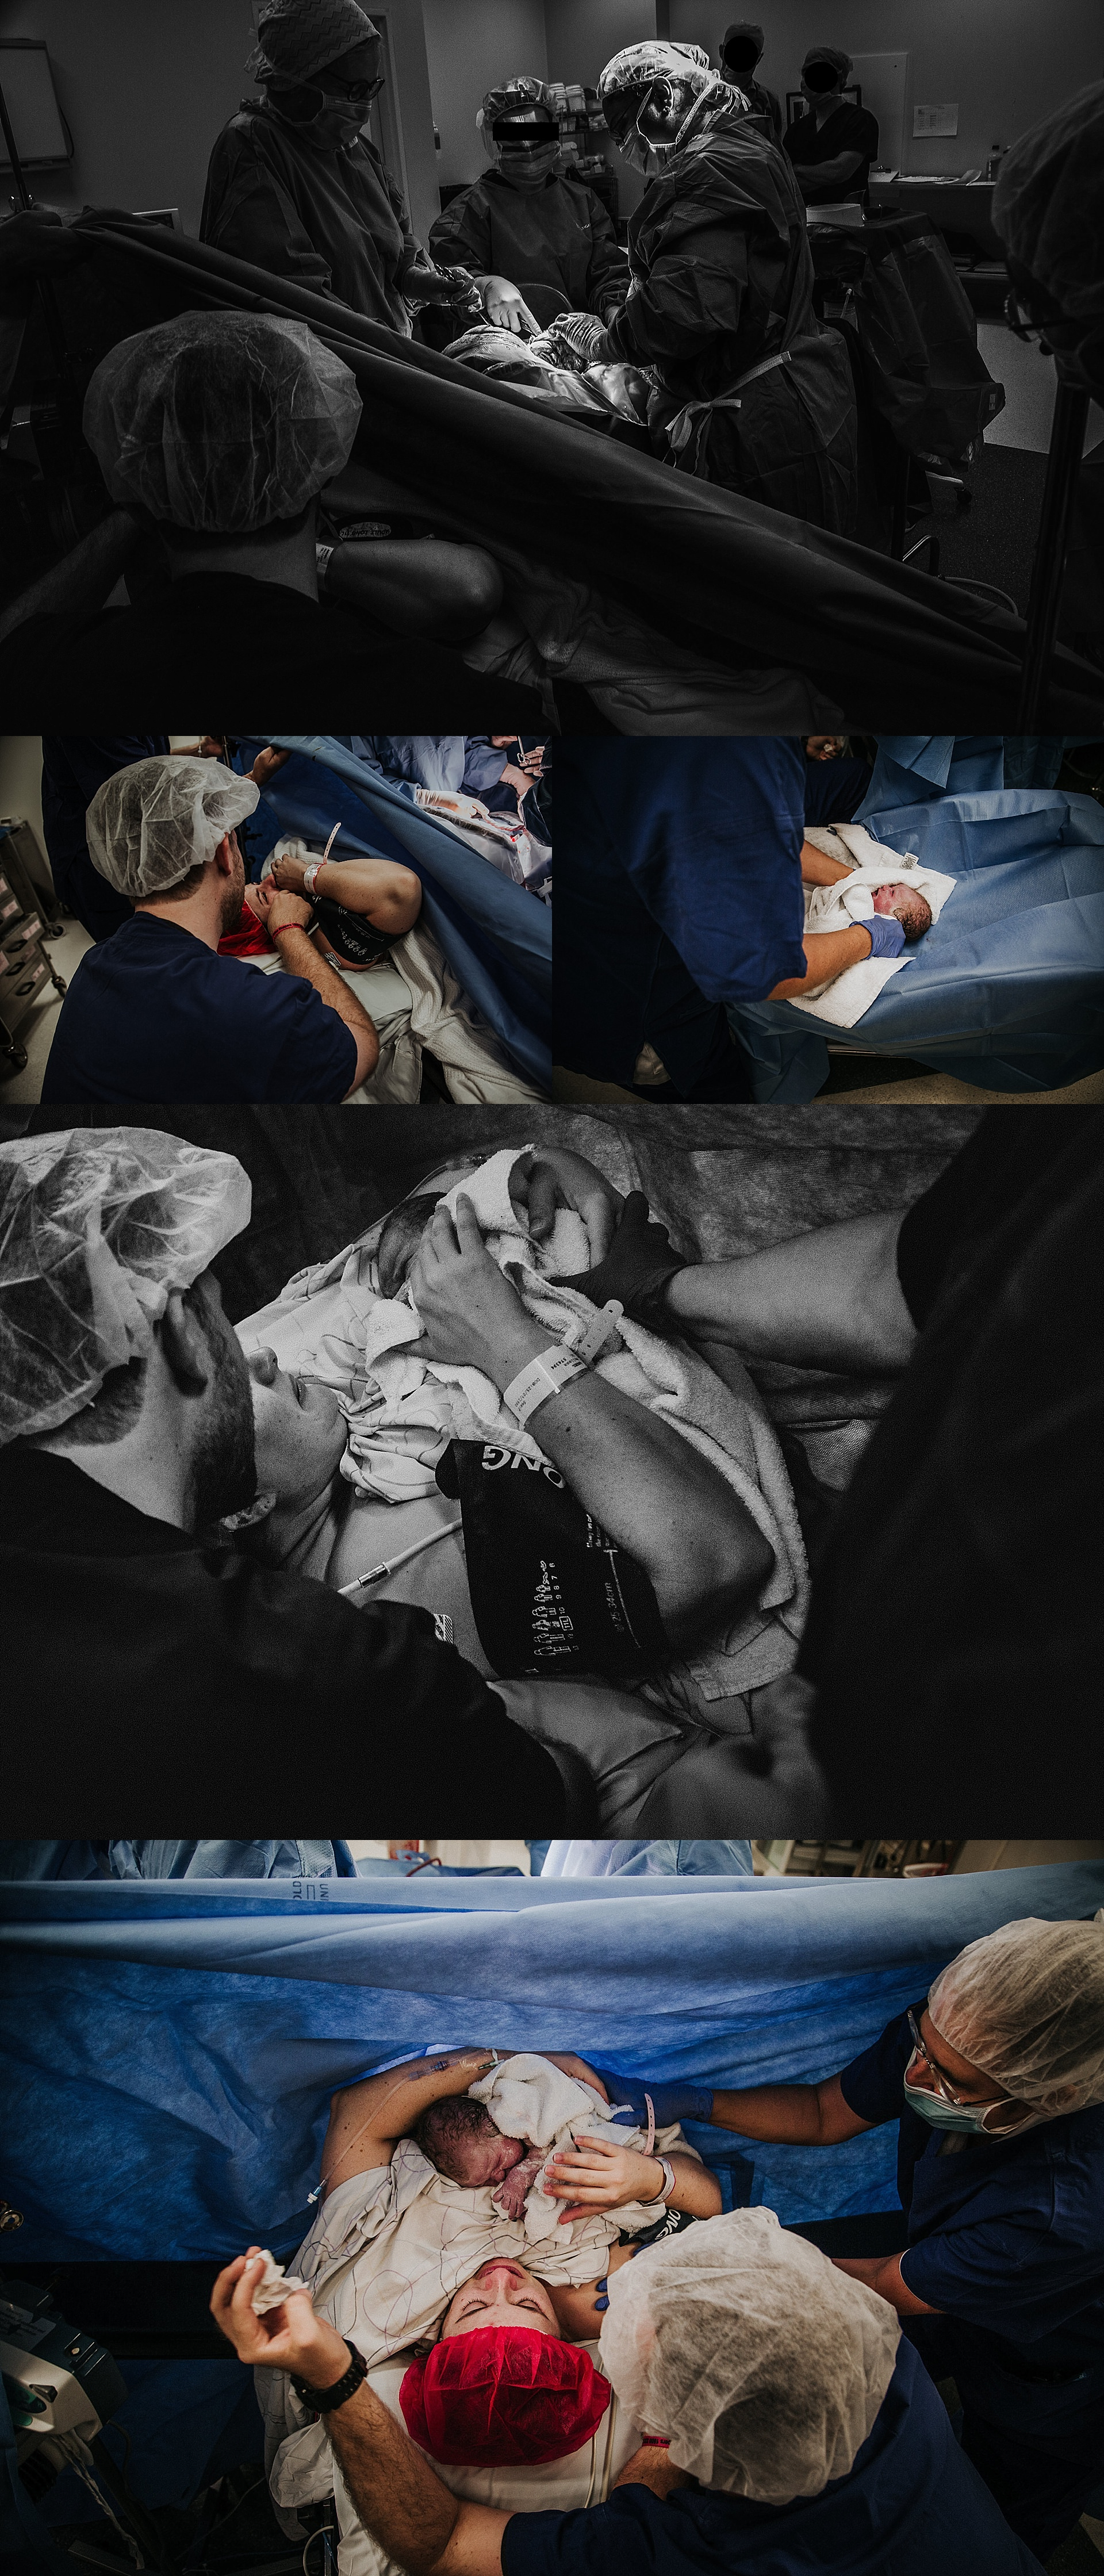 moment-of-birth-cesarean-section-operating-theatre